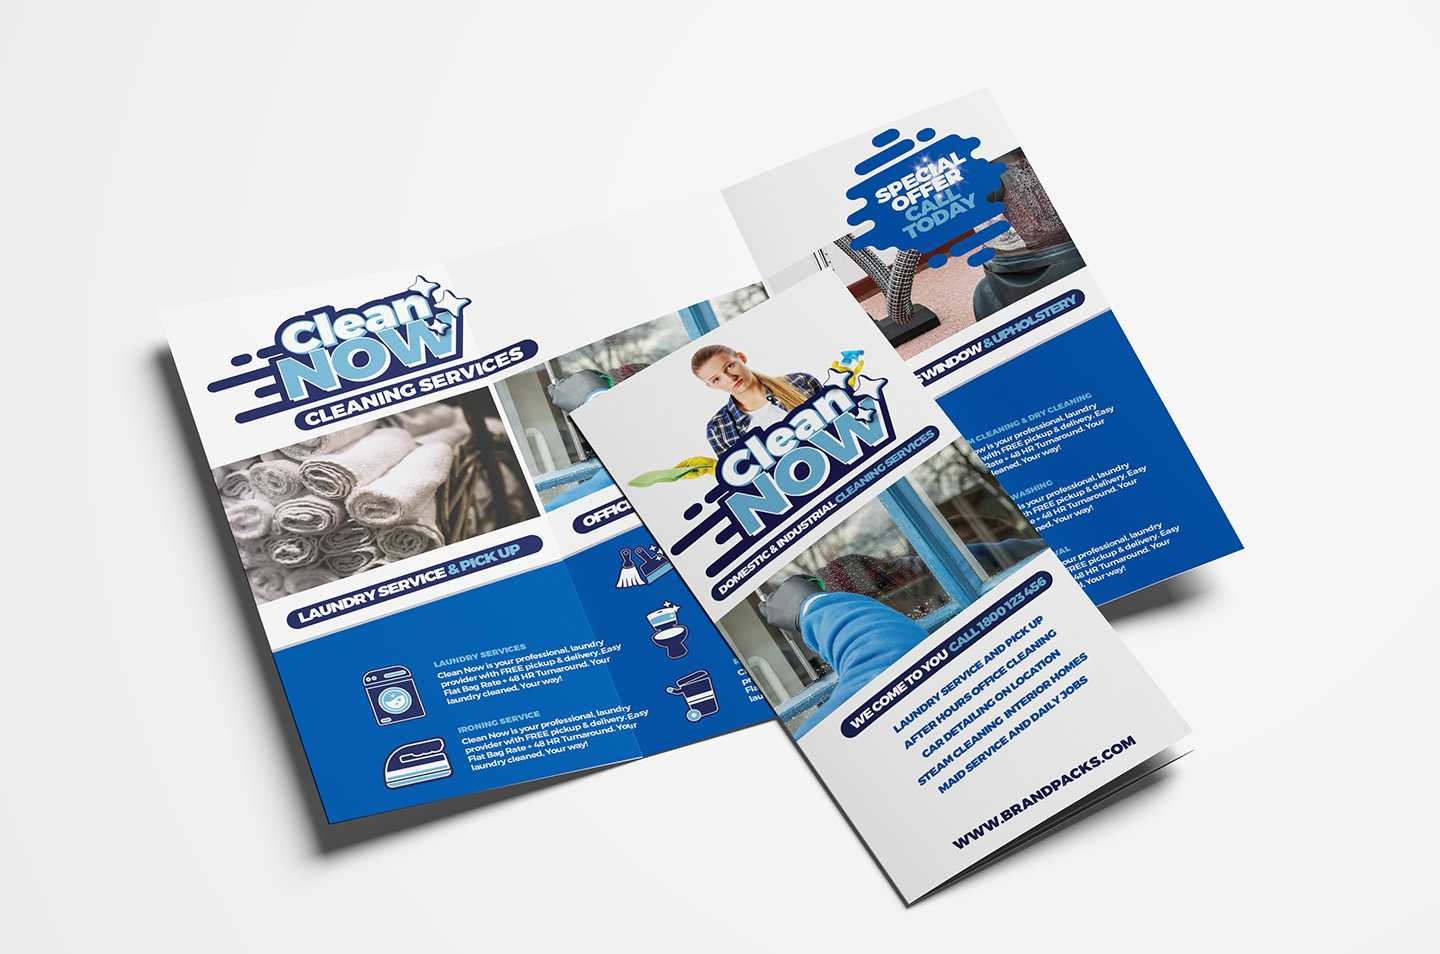 Cleaning Service Trifold Brochure Template In Psd, Ai For Cleaning Brochure Templates Free